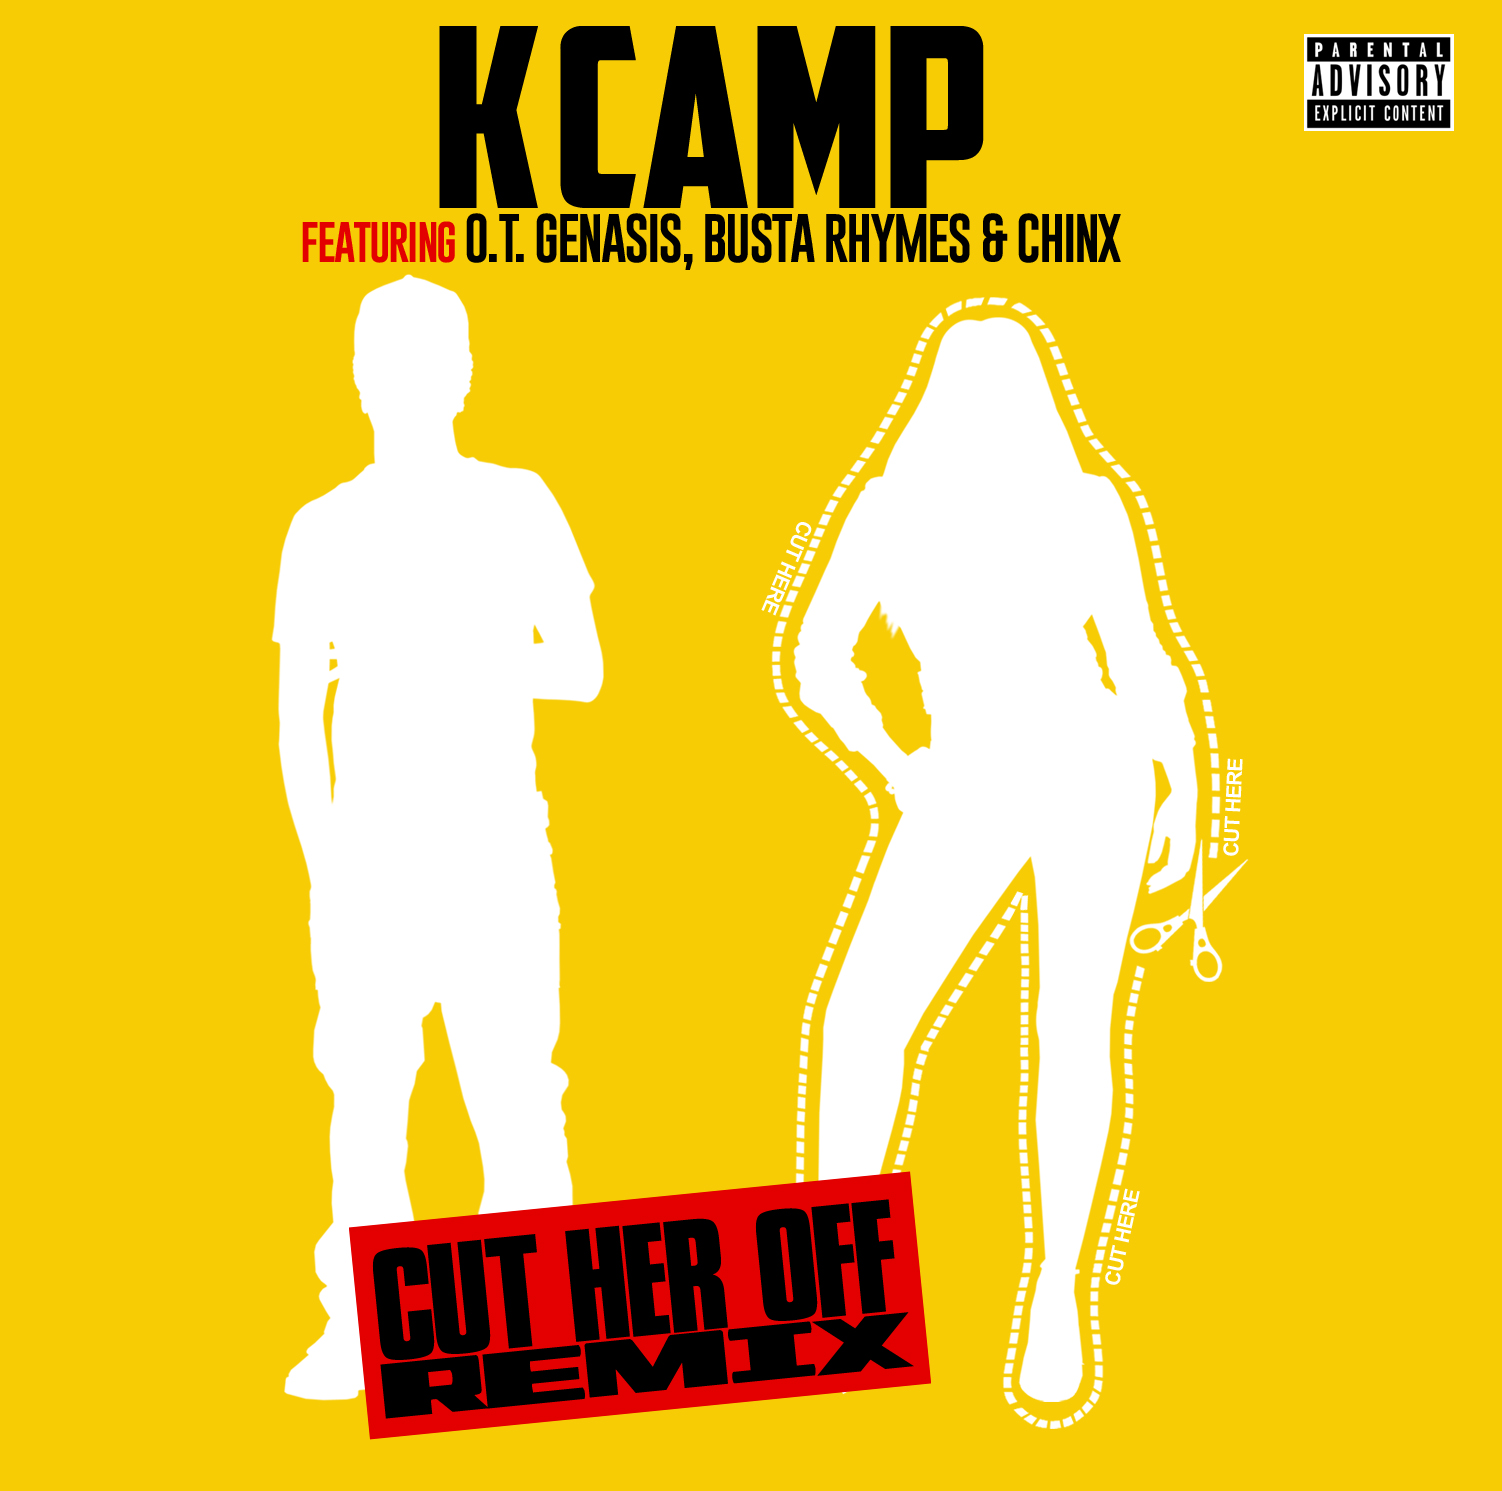 K Camp Cut Her Off Video Busta Rhymes, OT Genas...